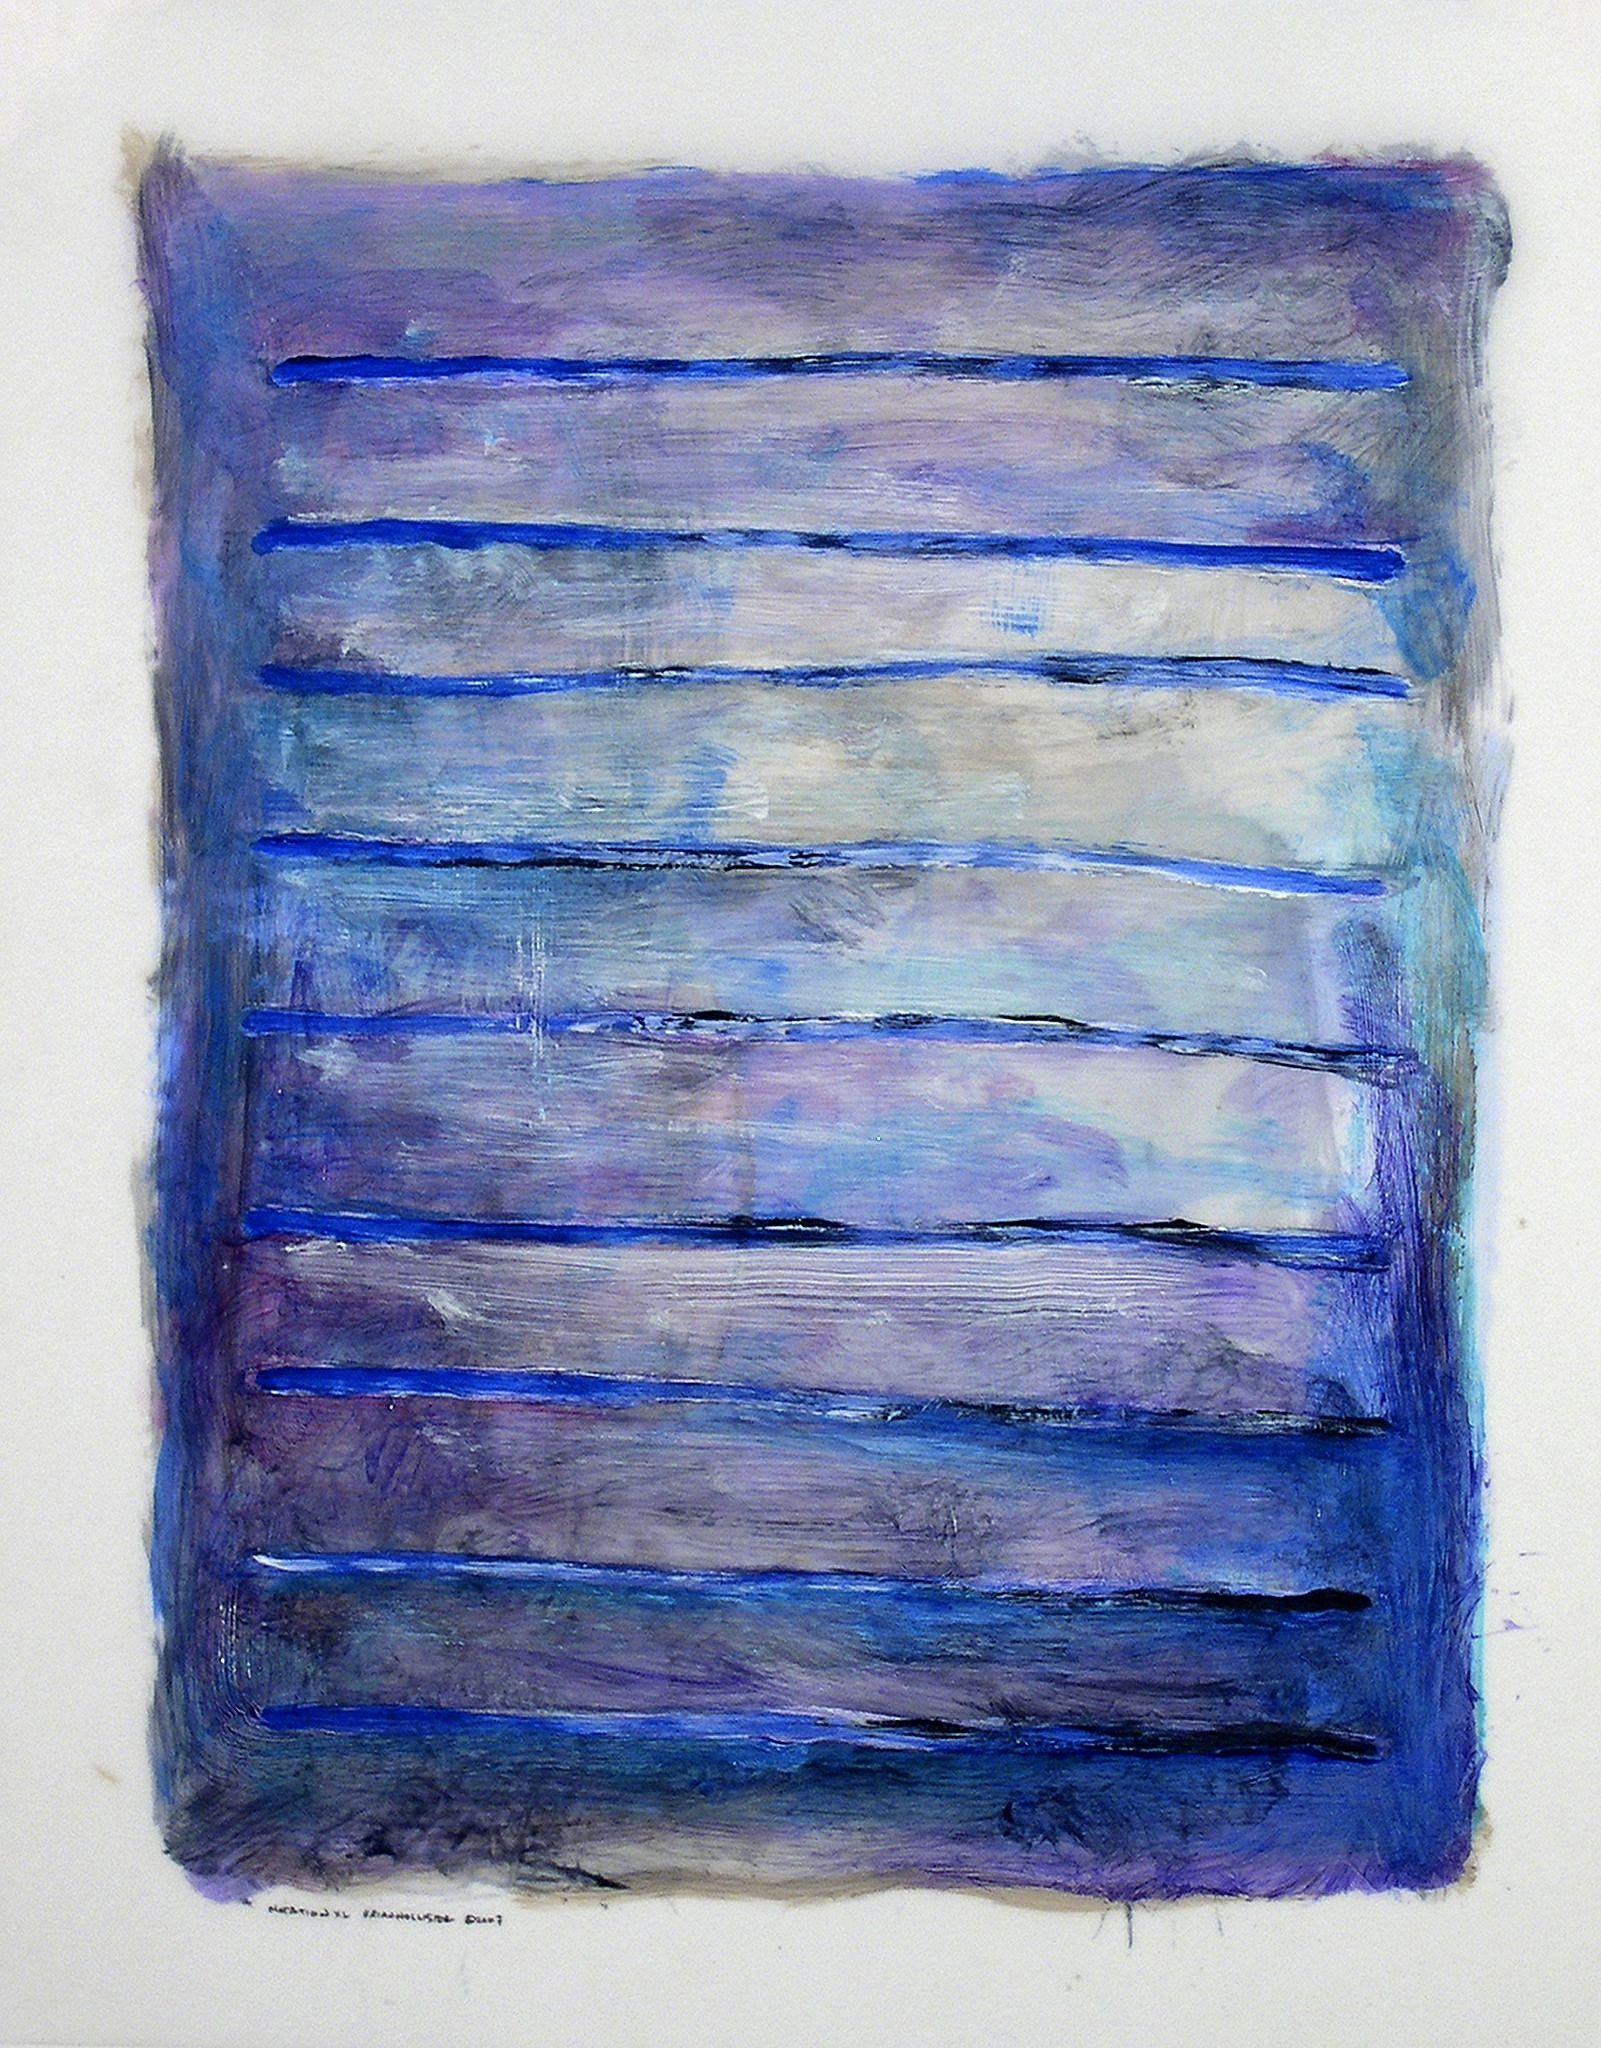 Brian Hollister, Notation XL (40) 2007, Oil on synthetic paper